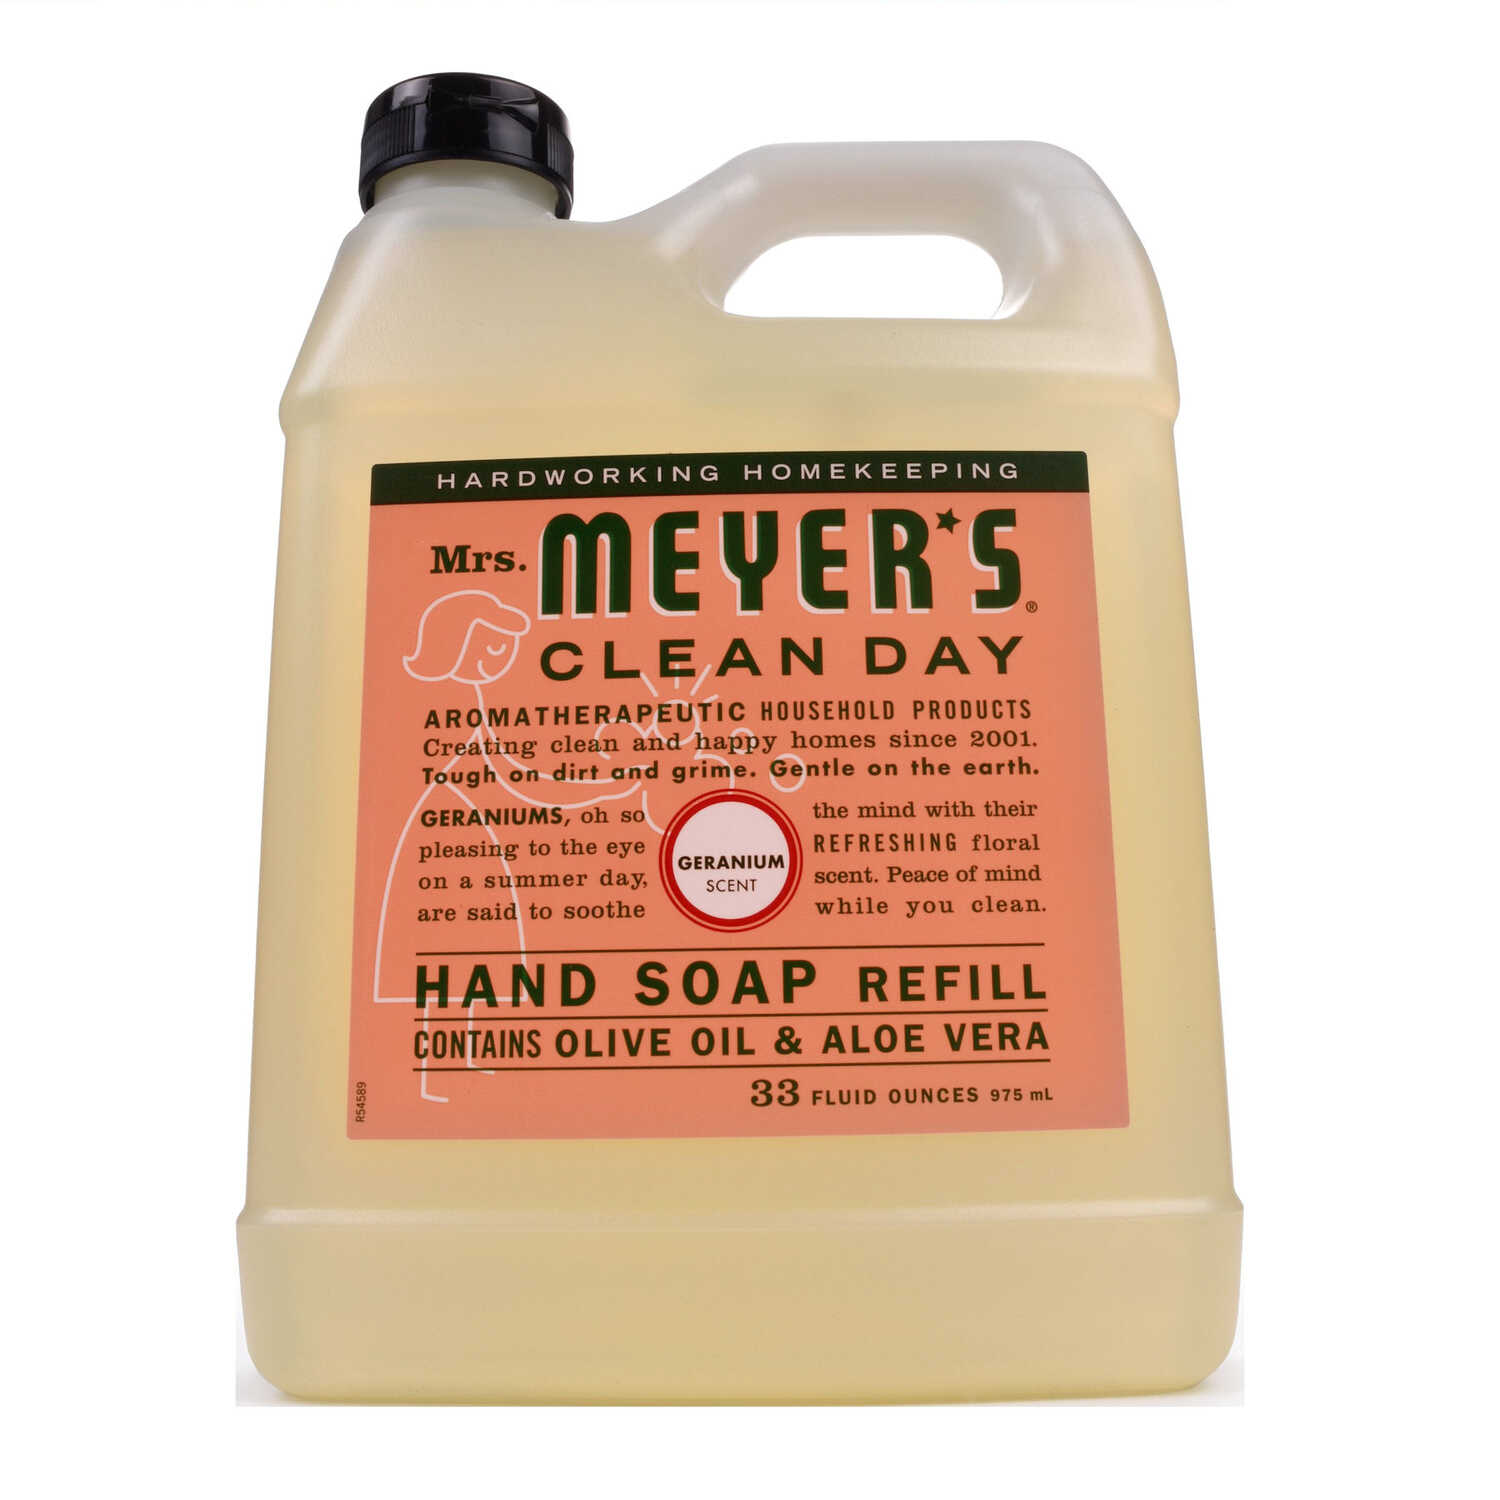 Mrs. Meyer's  Clean Day  Organic Geranium Scent Hand Soap Refill  33 oz.